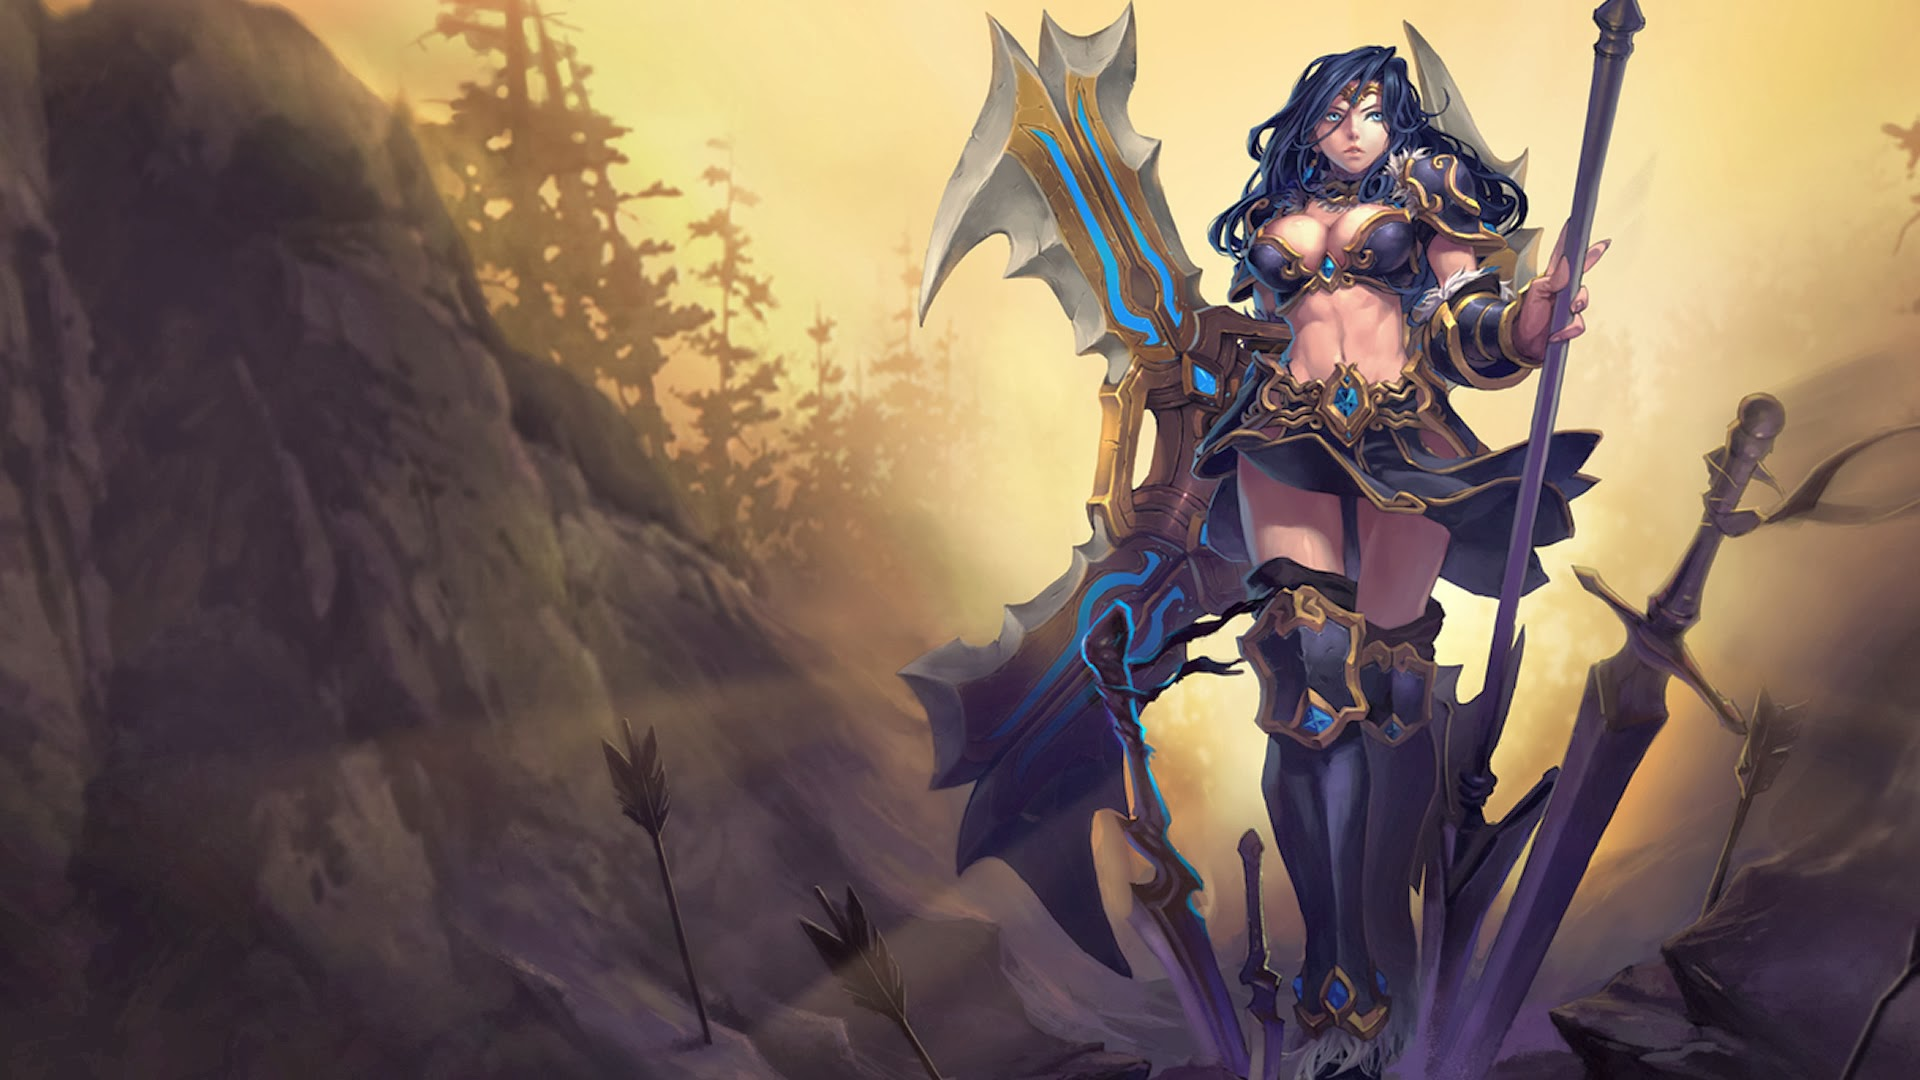 desktop backgrounds league of legends #21